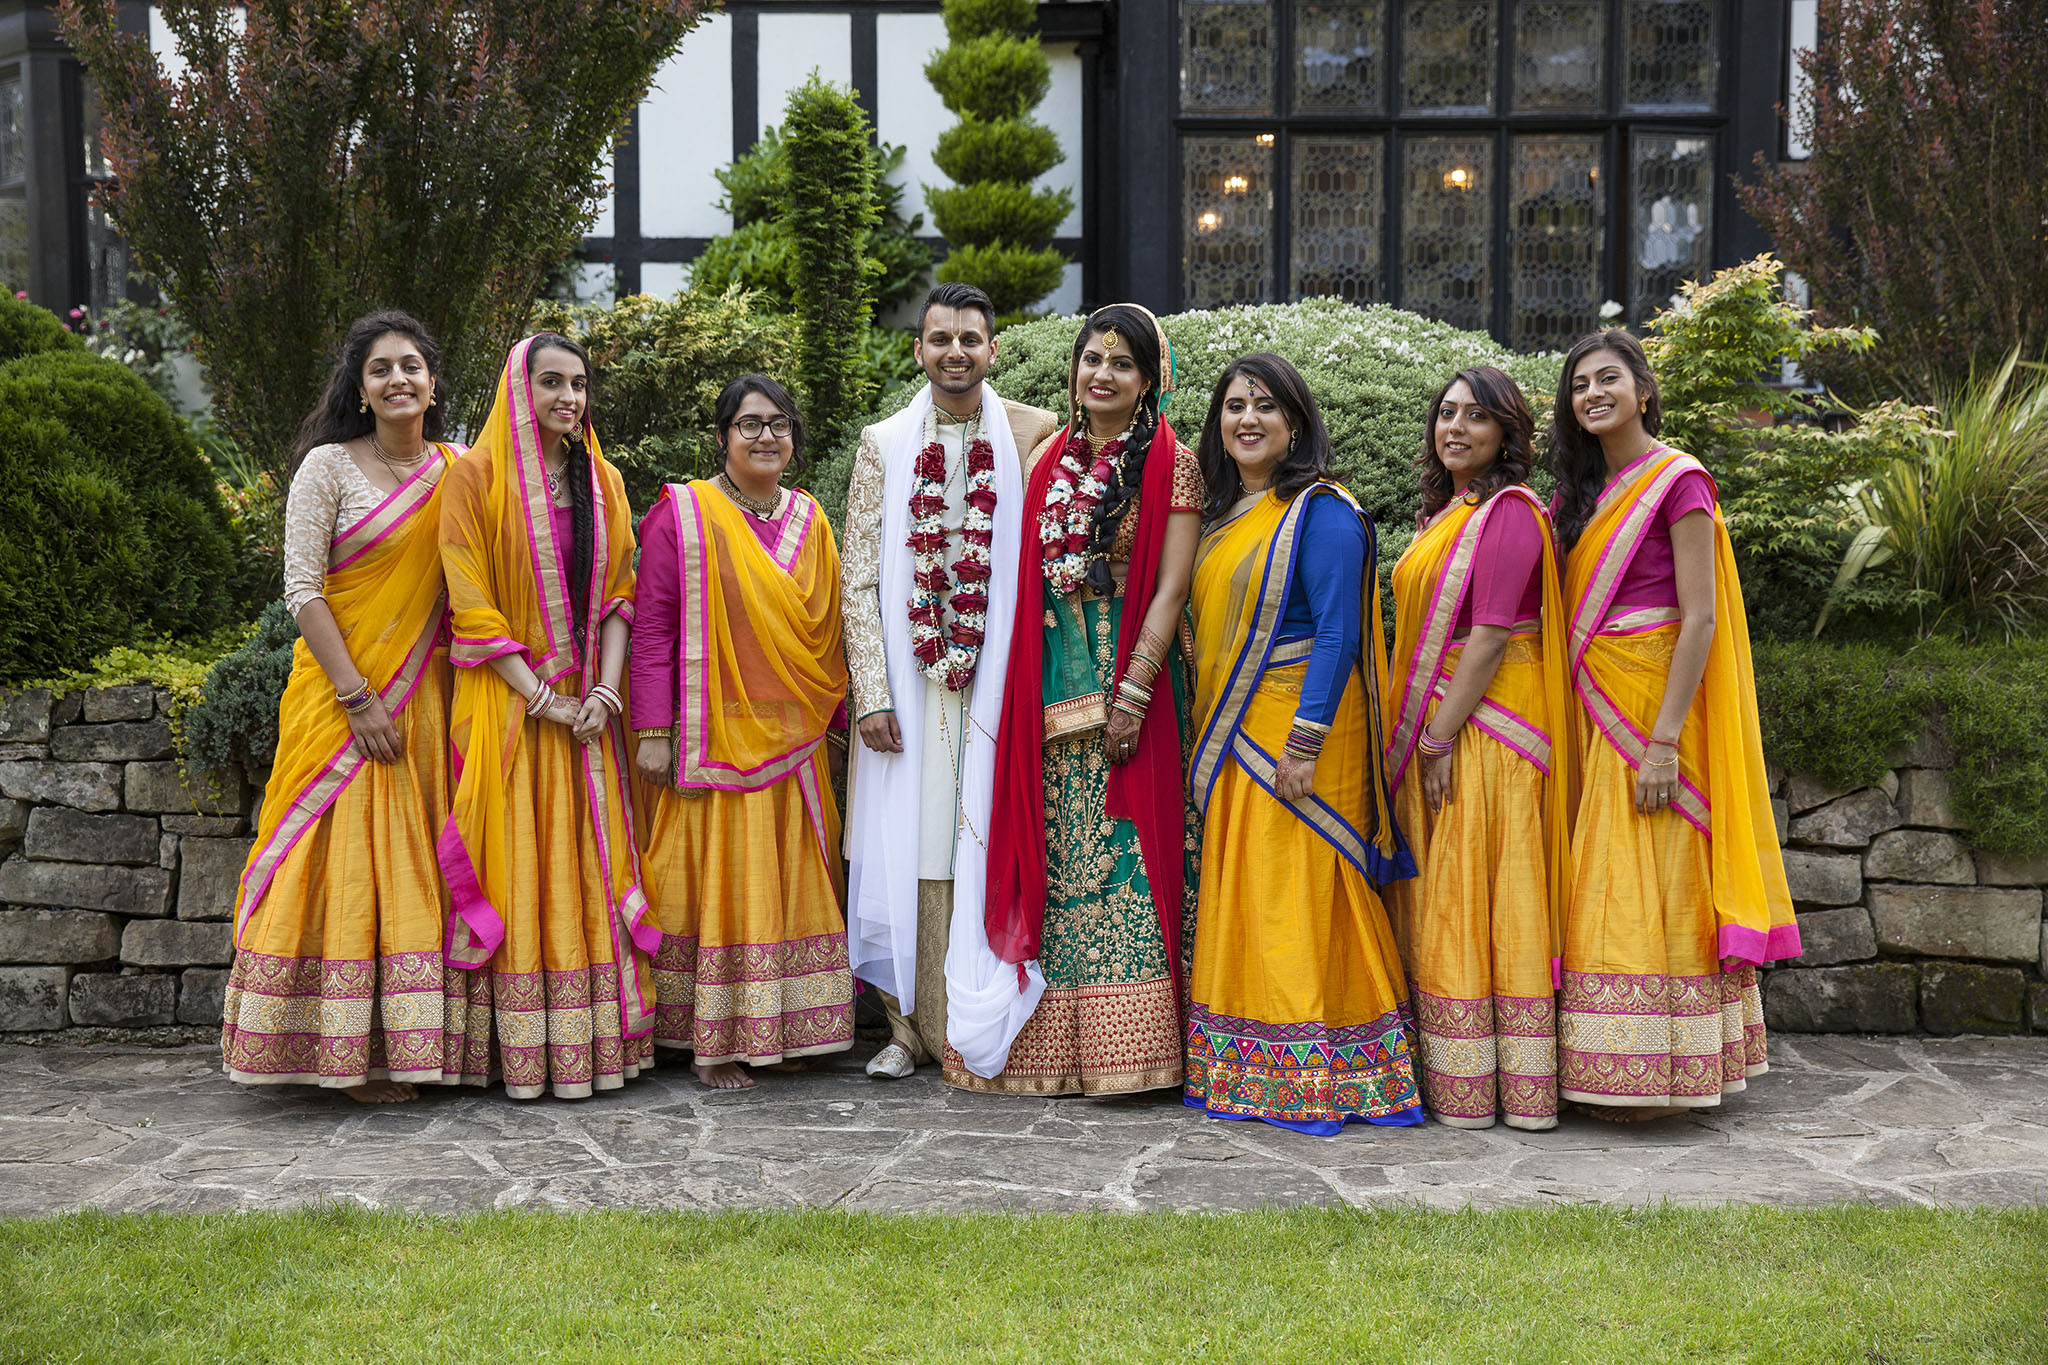 elizabethgphotography_kingslangley_hertfordshire_fineart_indian_wedding_photography_jigna_bhuja_bhaktivedanta_manor_watford_31.jpg